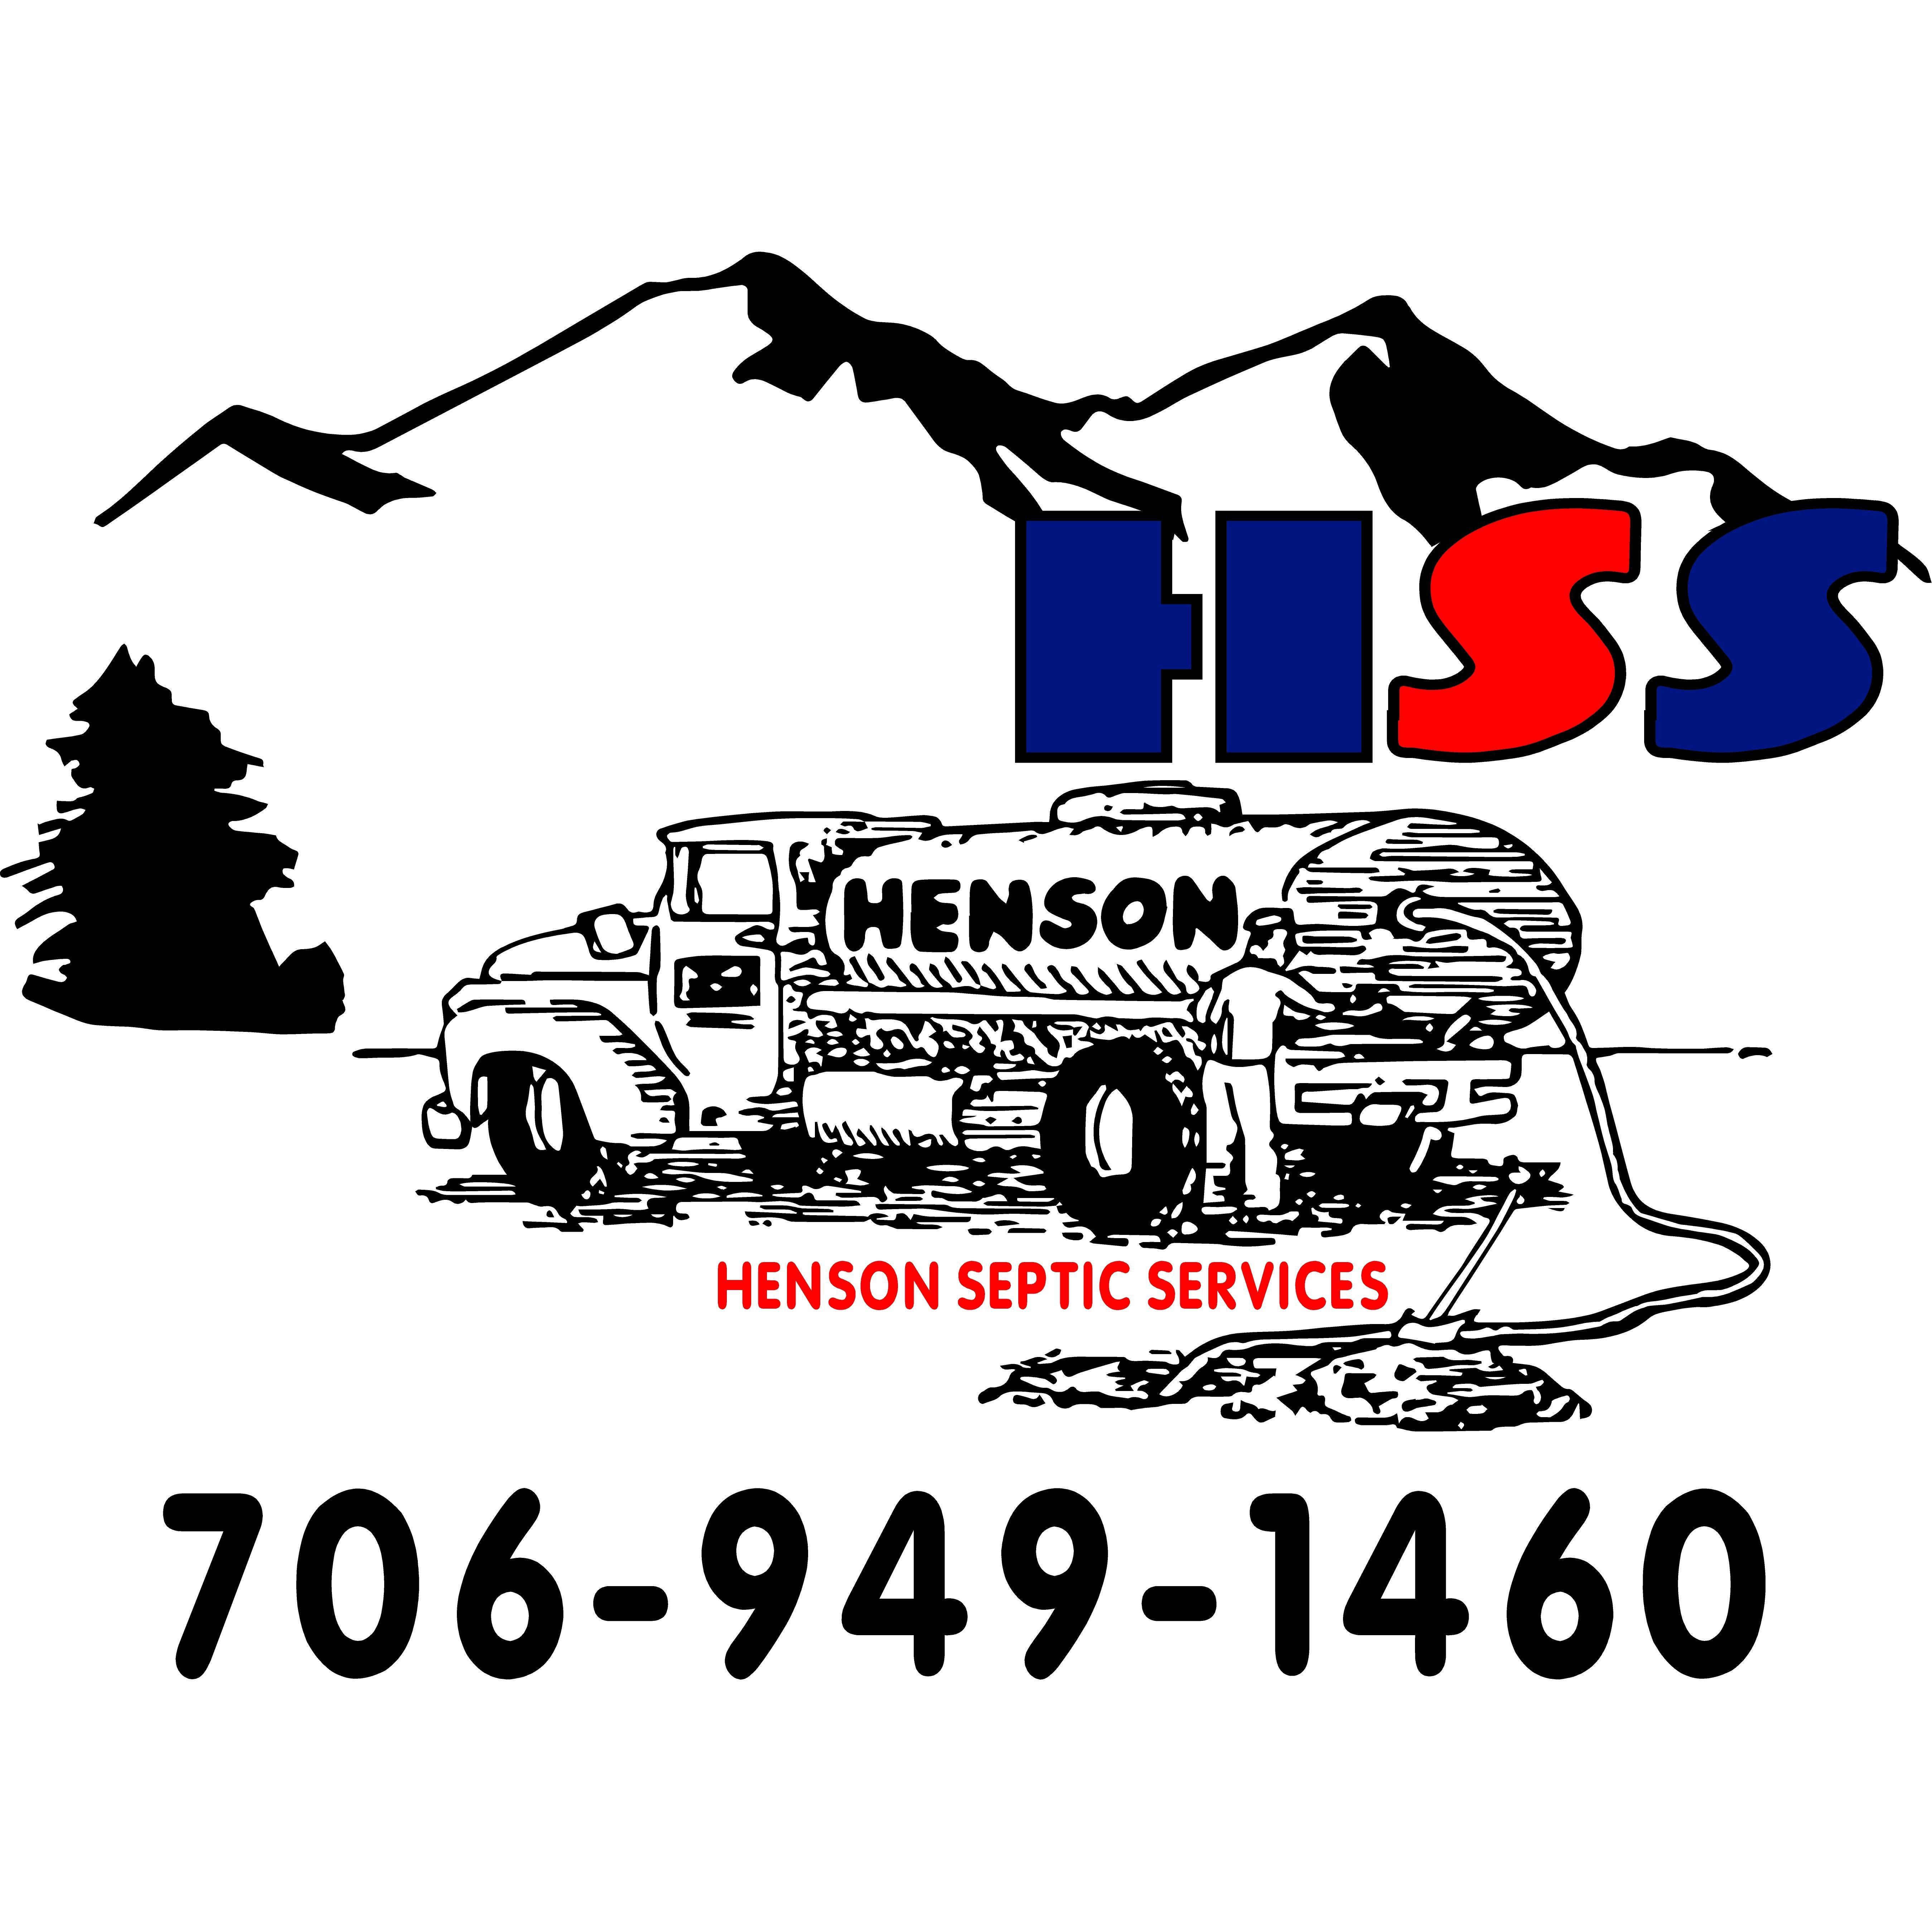 Henson Septic Services image 5